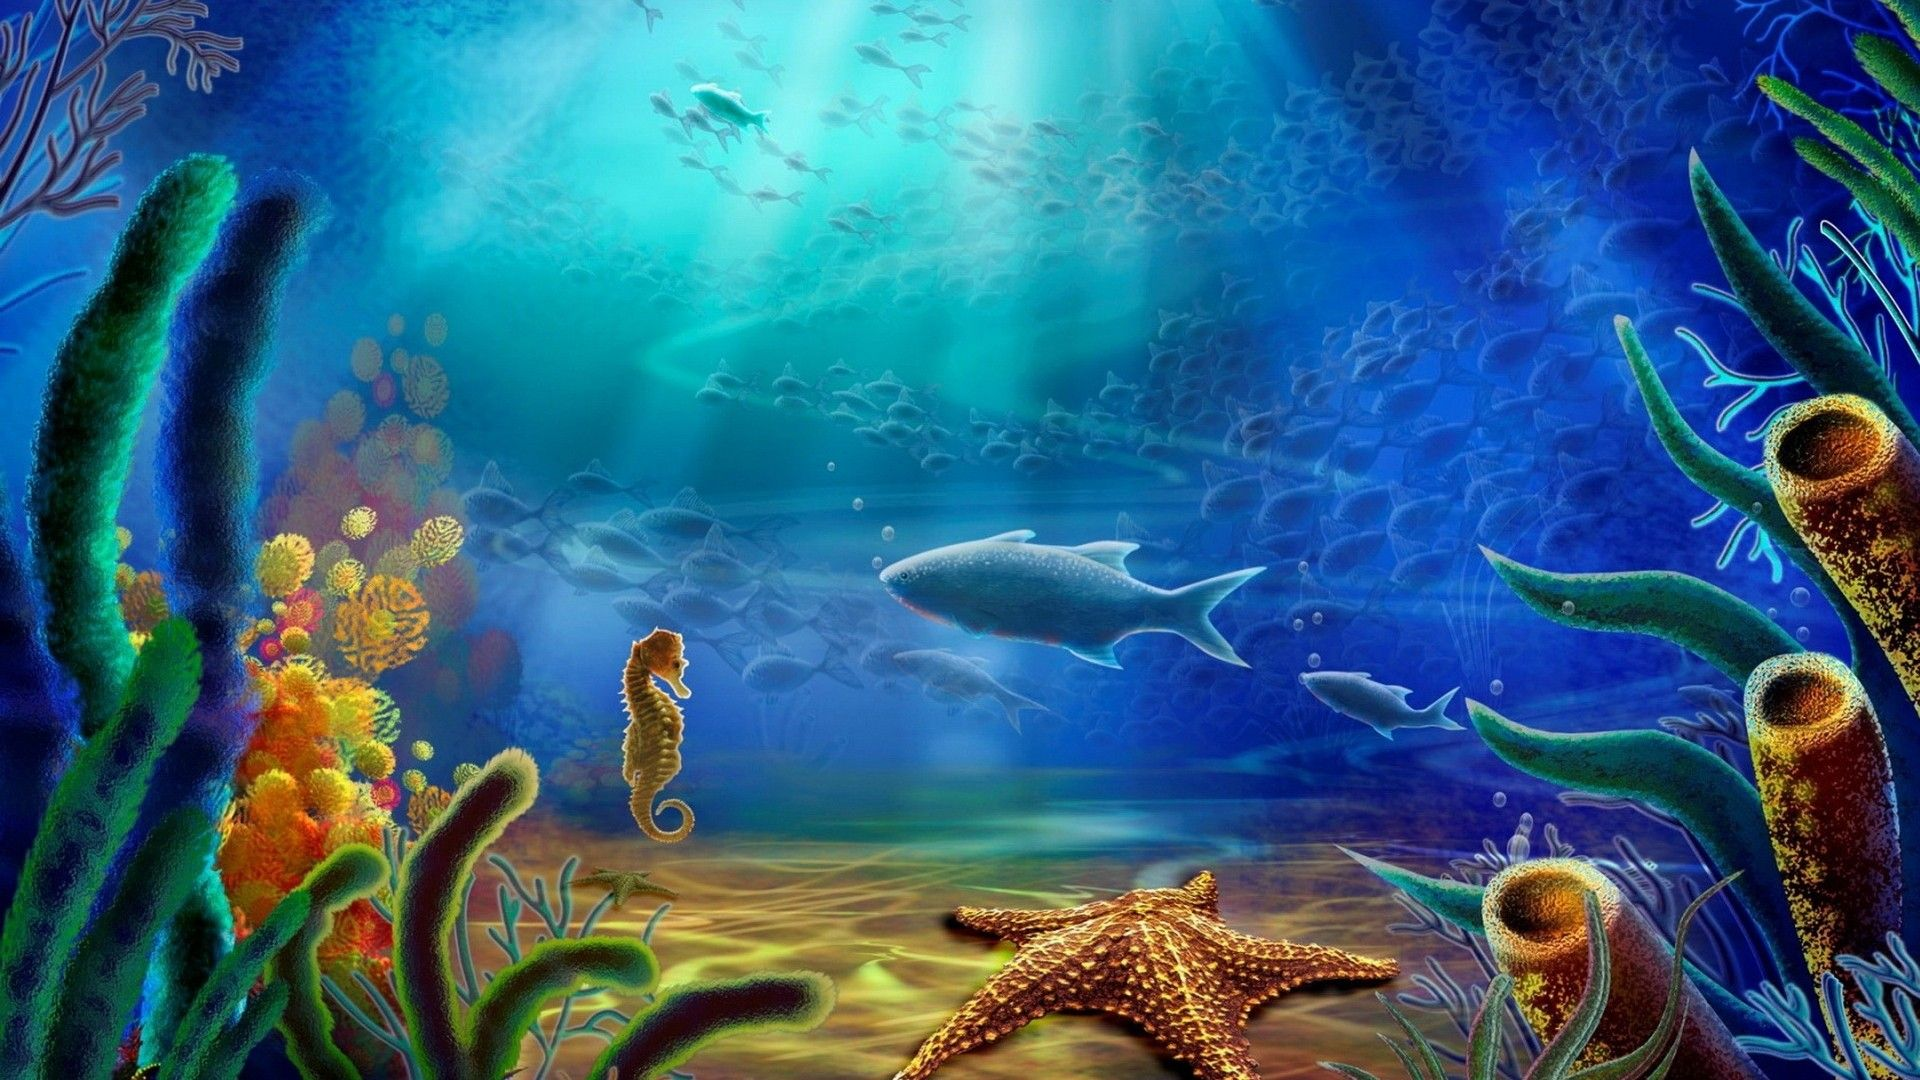 Free Under The Ocean Wallpaper | Underwater wallpaper ...